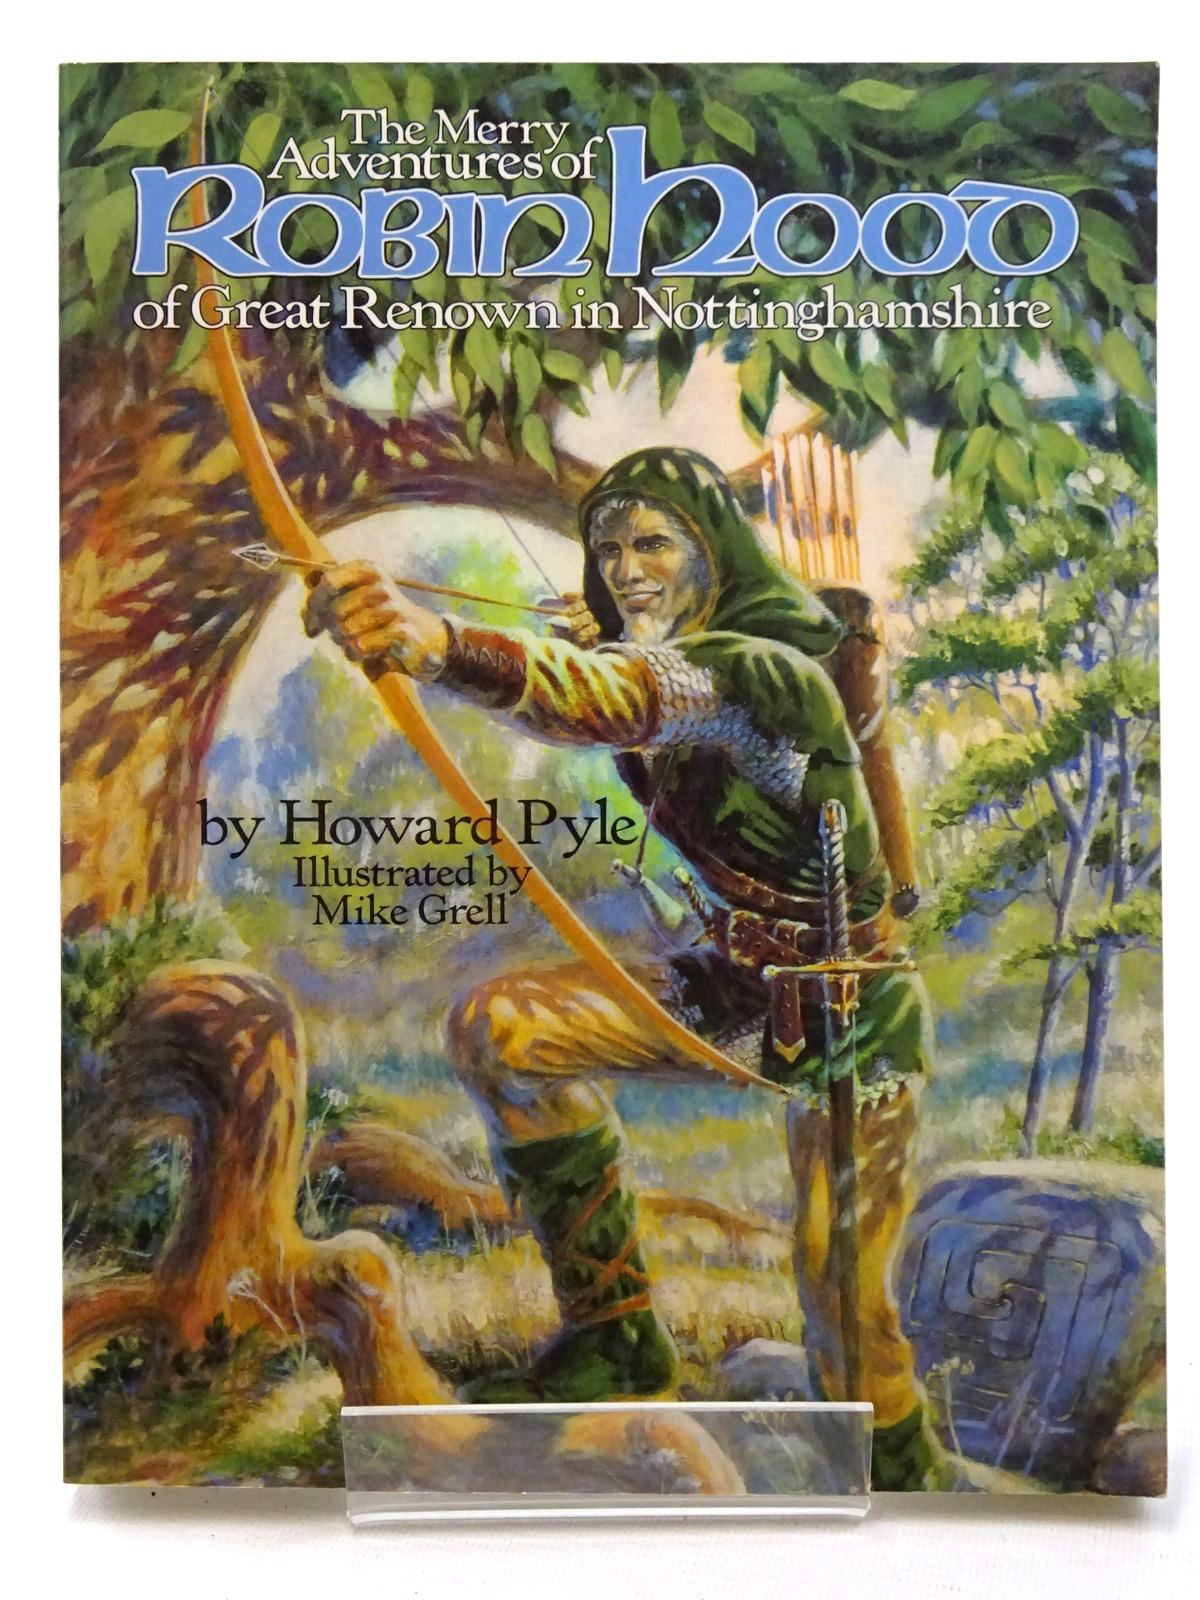 Photo of THE MERRY ADVENTURES OF ROBIN HOOD OF GREAT RENOWN IN NOTTINGHAMSHIRE written by Pyle, Howard illustrated by Grell, Mike published by The Donning Company Publishers (STOCK CODE: 2125224)  for sale by Stella & Rose's Books